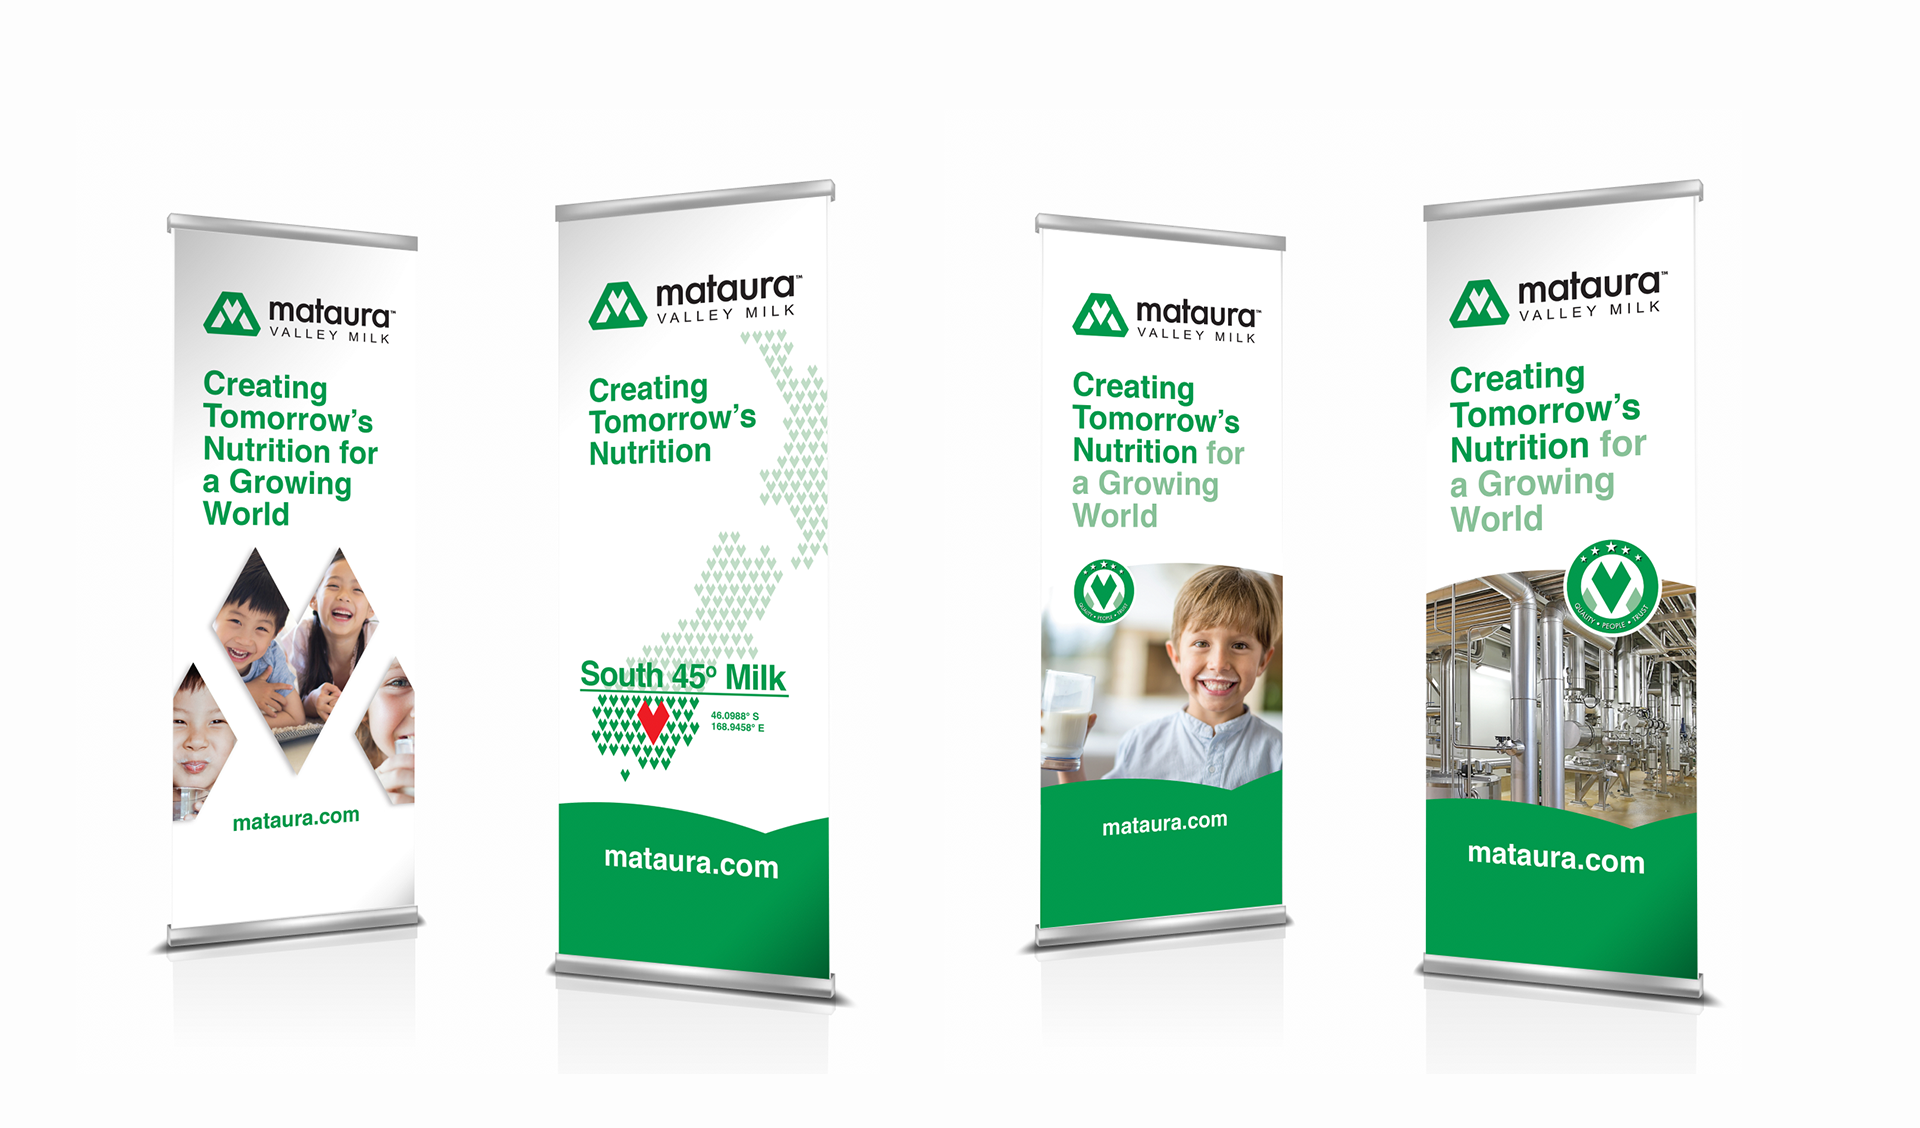 REDFIRE_mataura_photography_branding_packaging_digital_graphicdesign_advertising_web_designagency